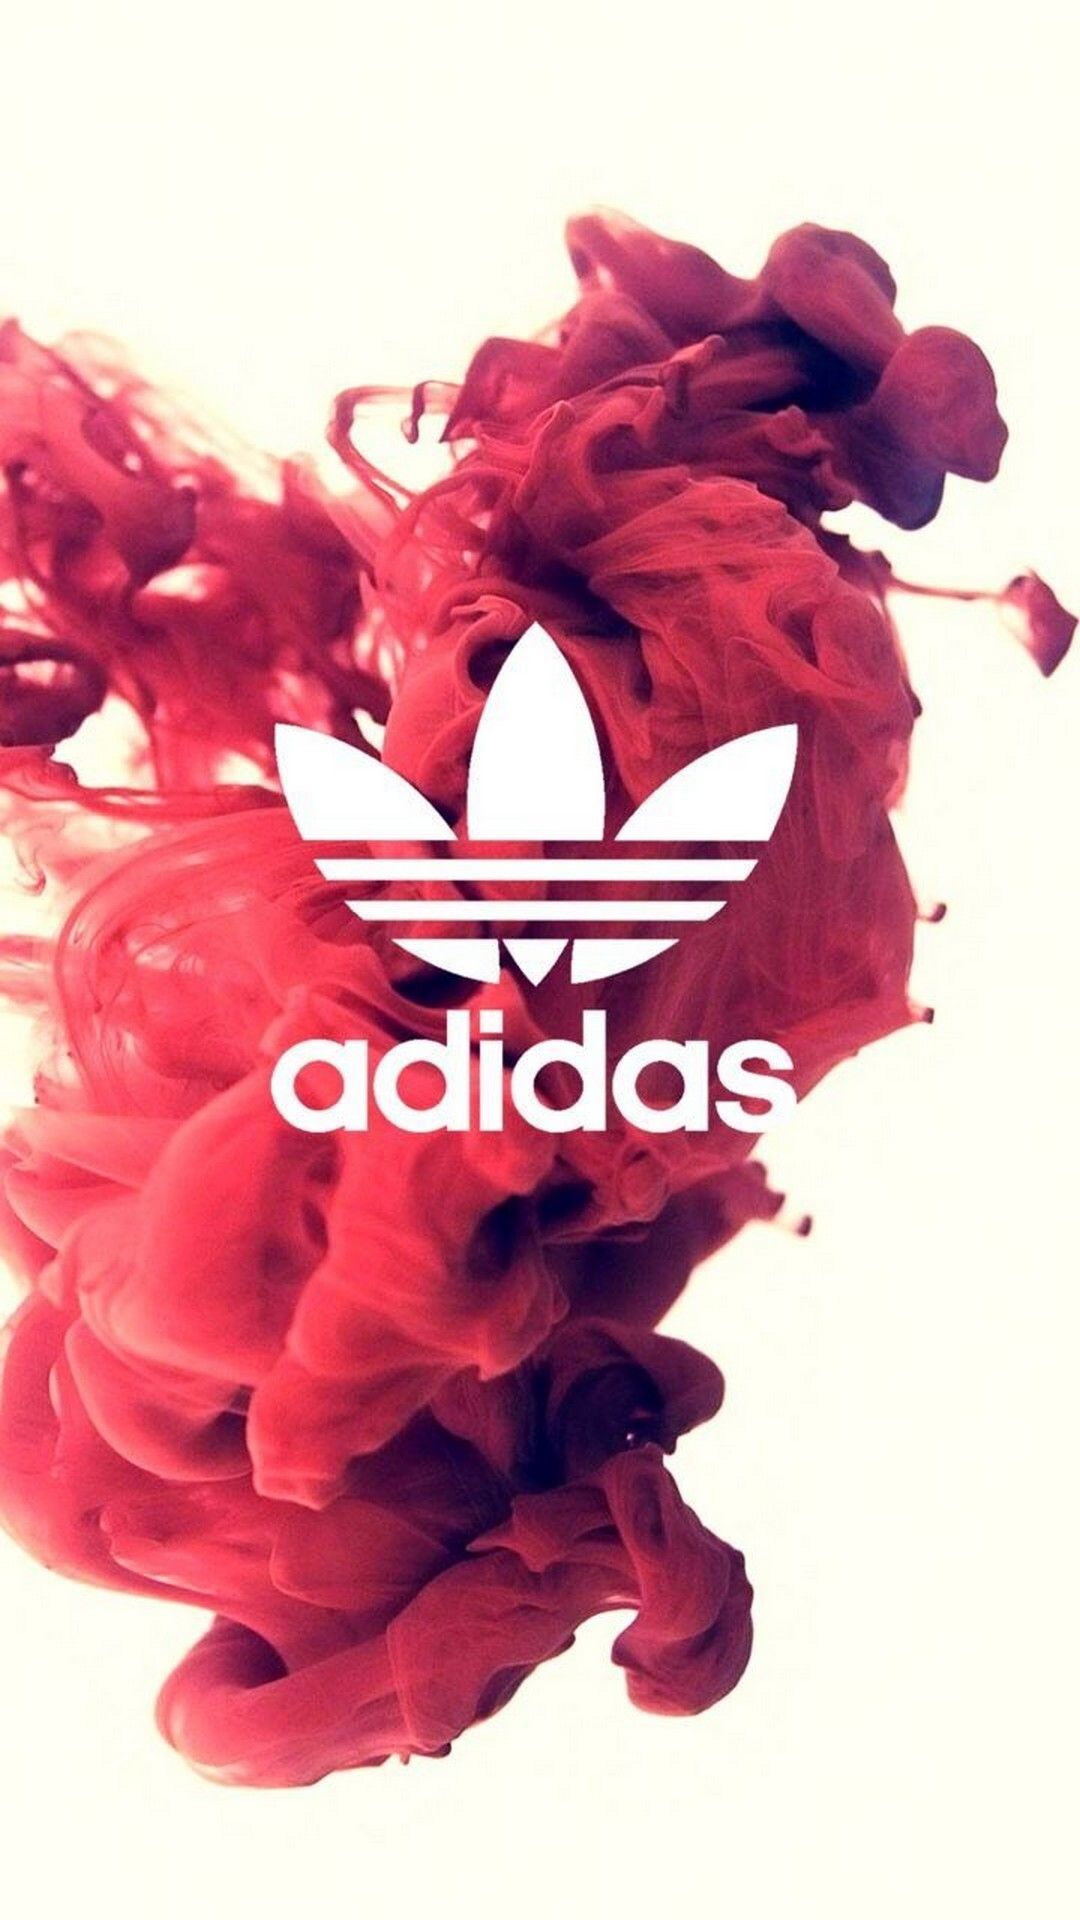 Adidas iPhone 7 Wallpapers - Top Free ...